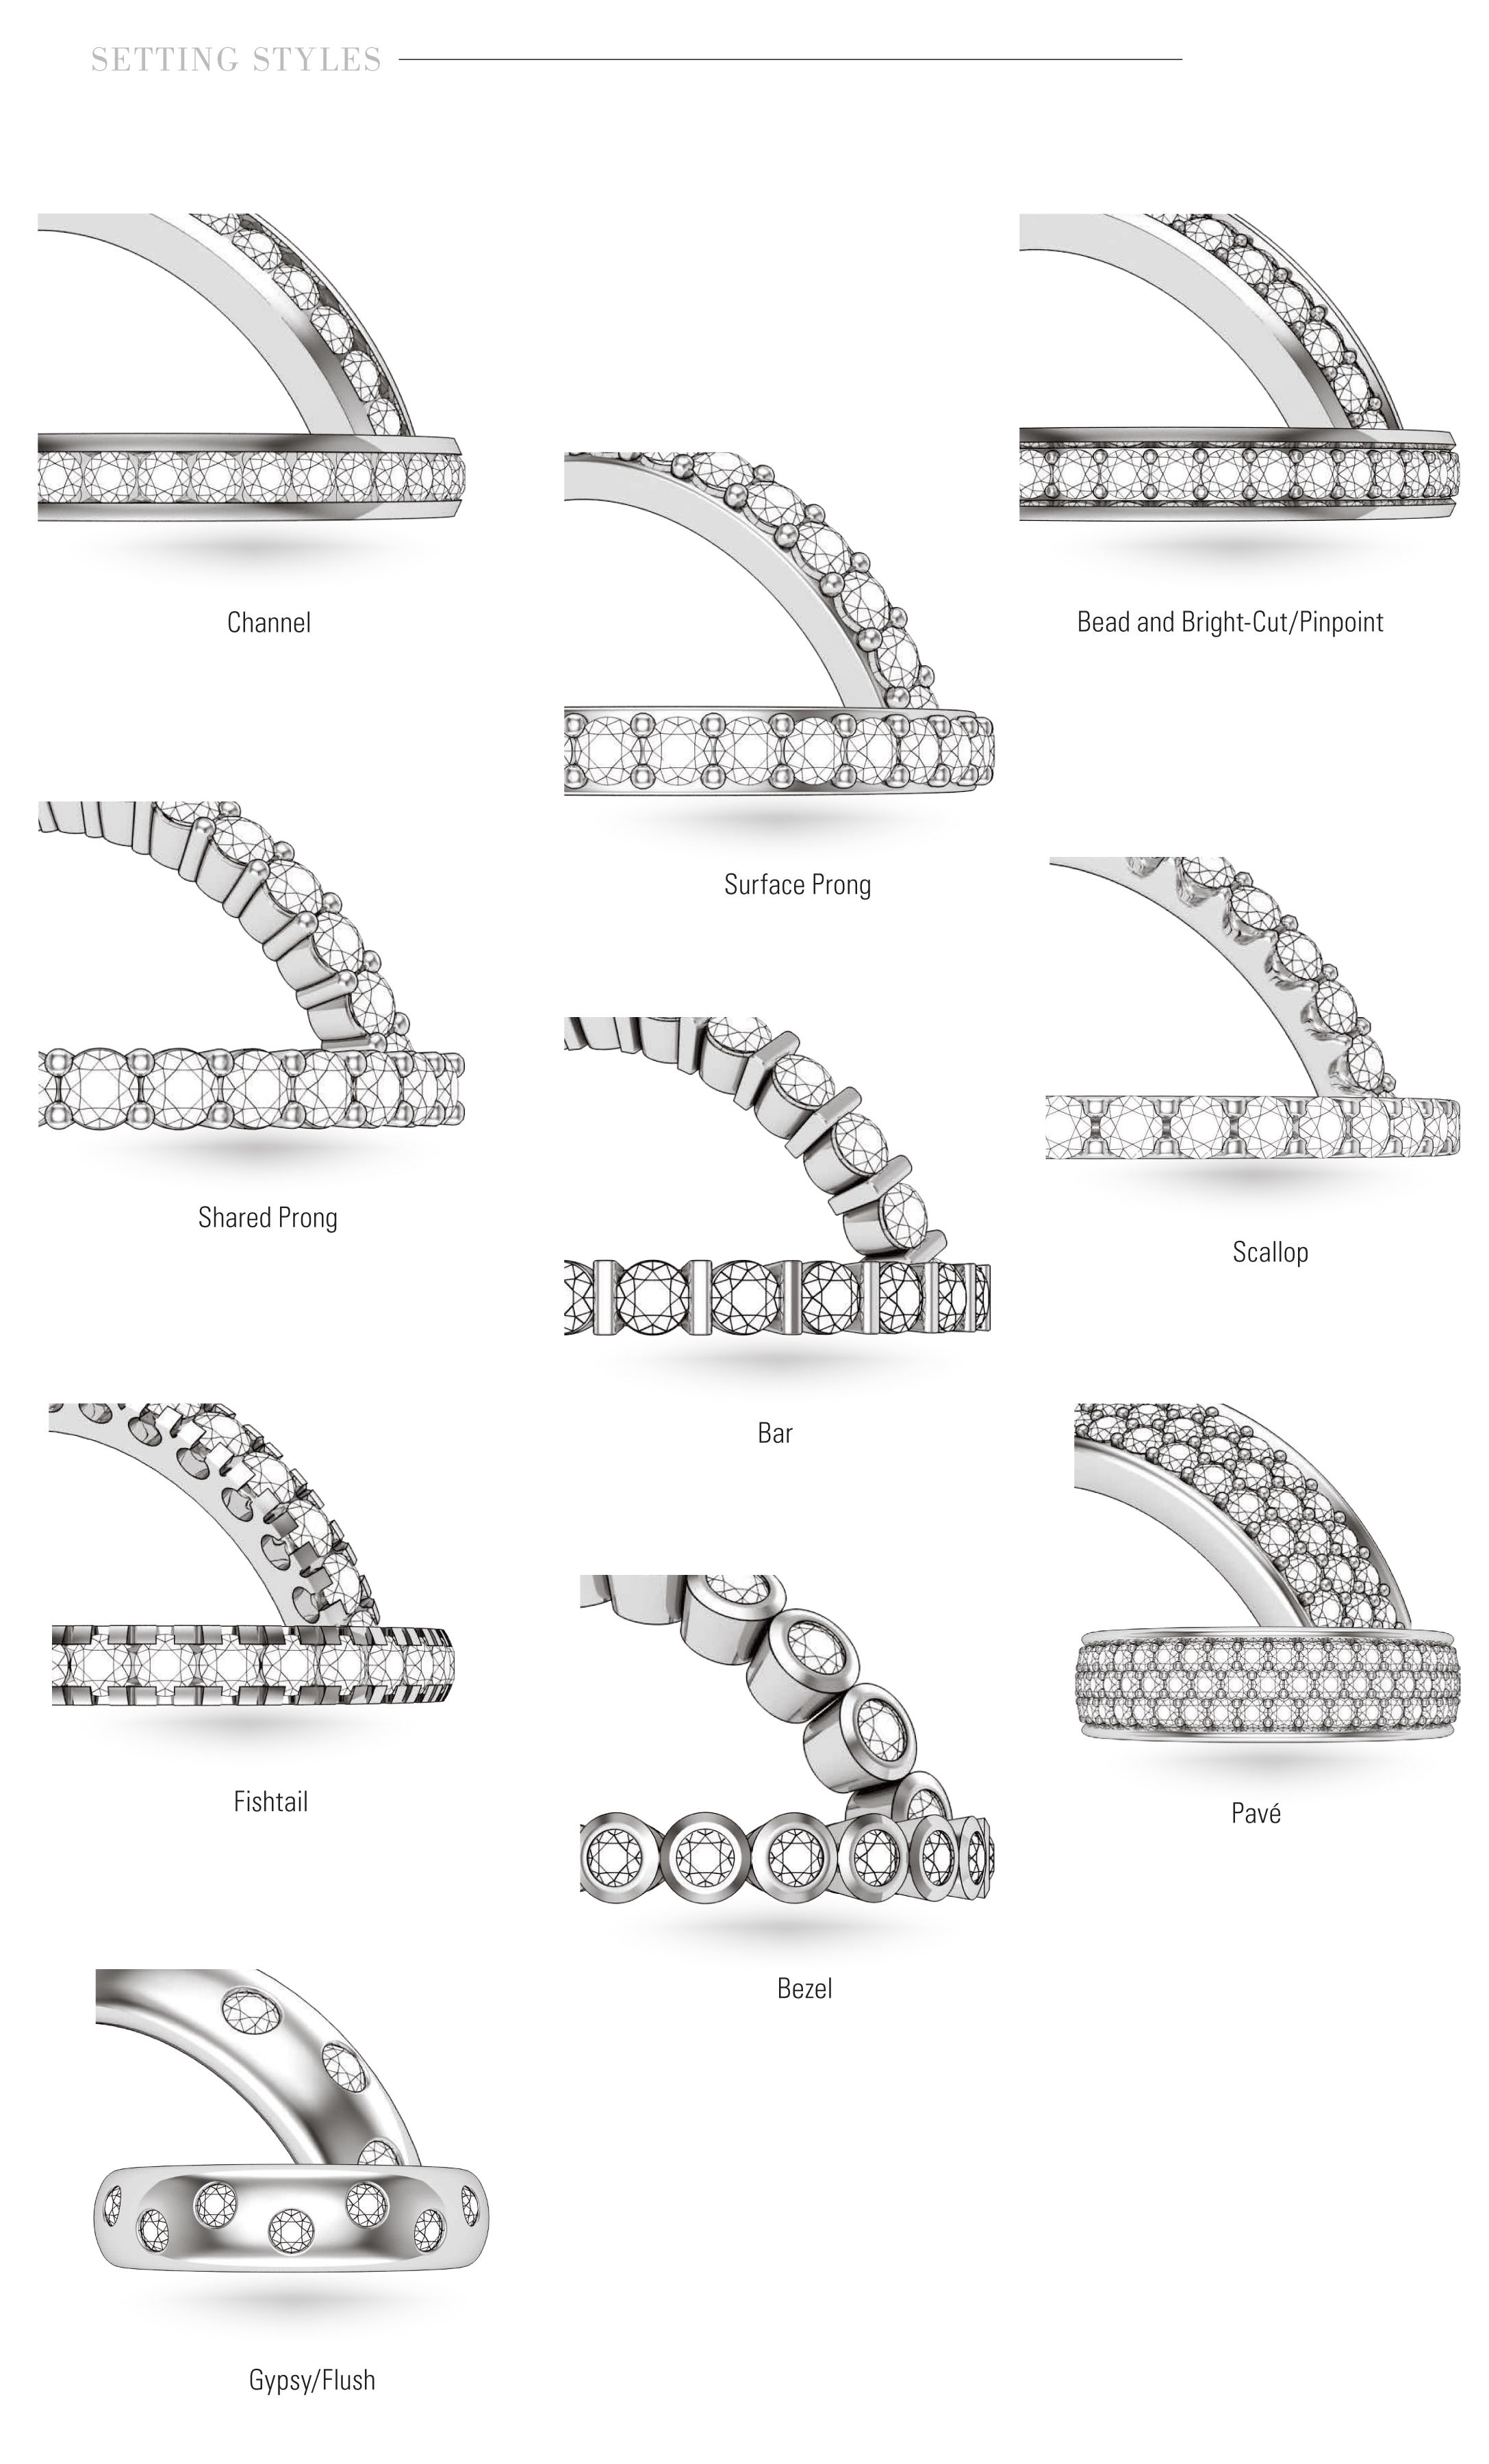 under rings diamond dollars konstanze styles gallery wavy with weddings glamour engagement bands band ring main